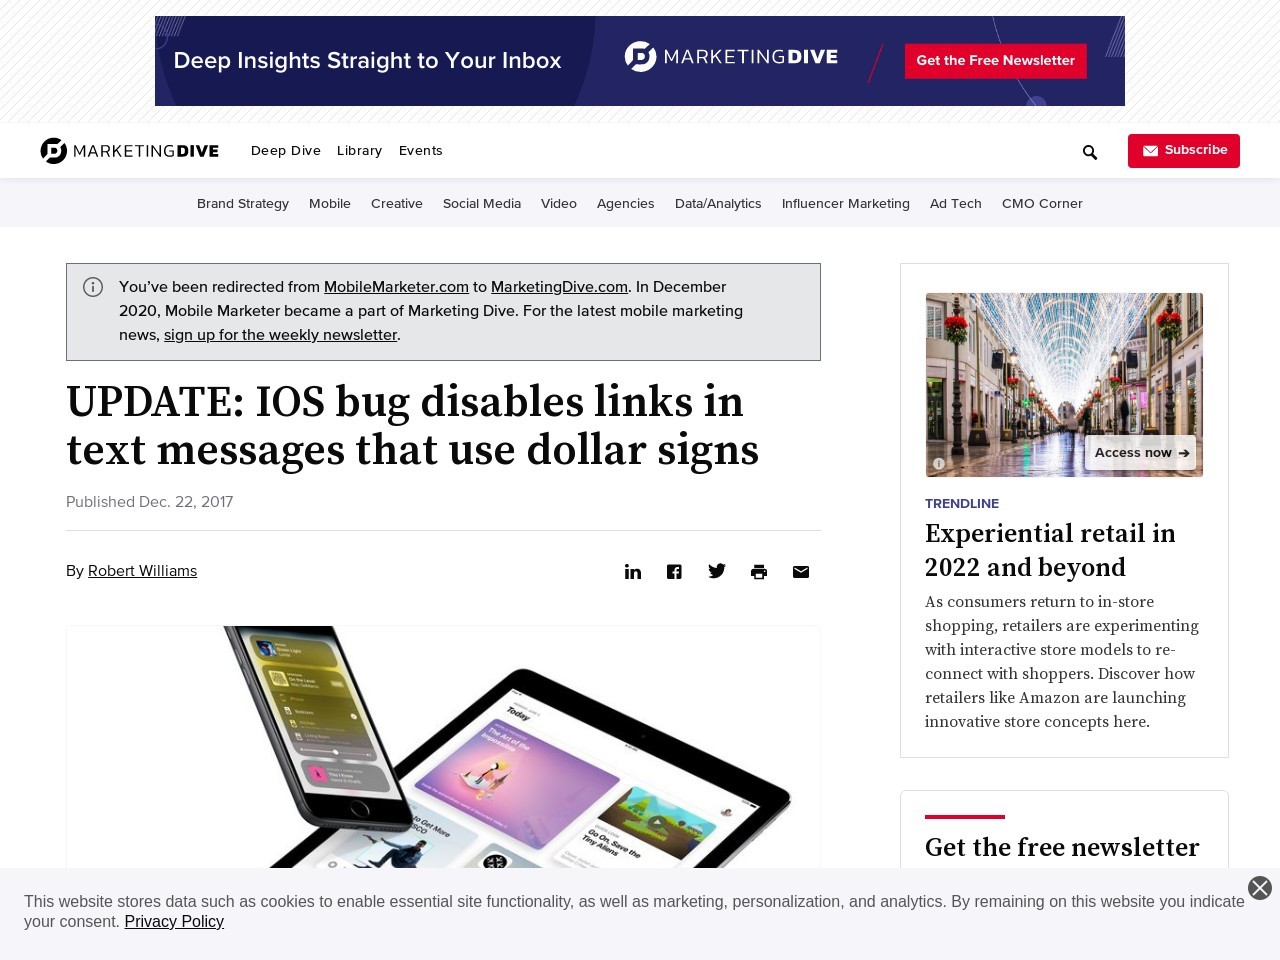 IOS bug disables links in text messages that use dollar signs